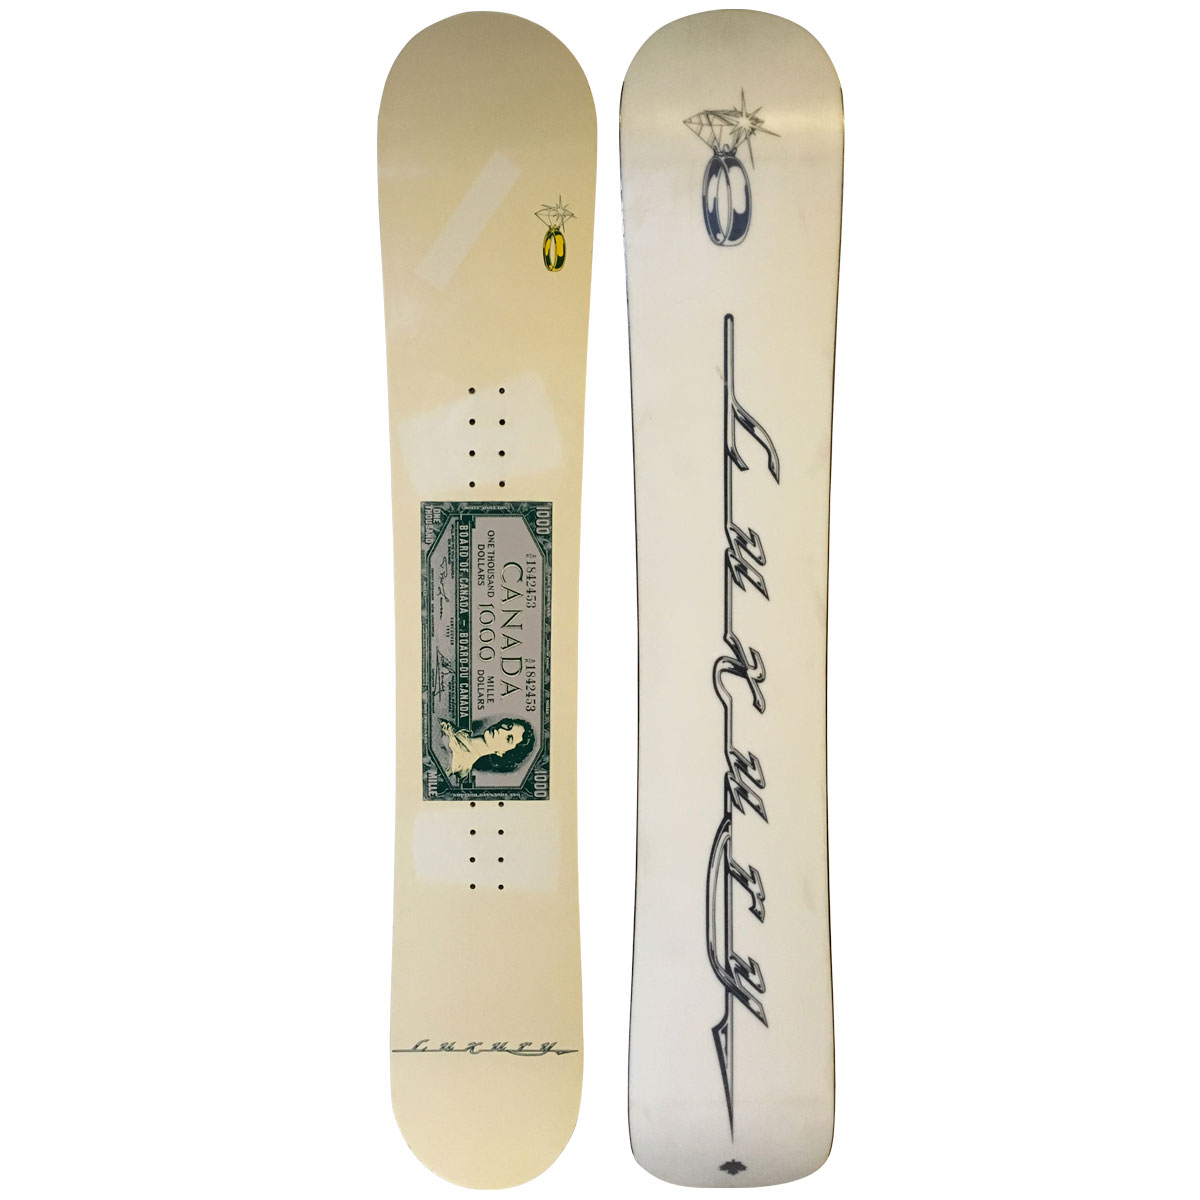 Luxury Snowboards